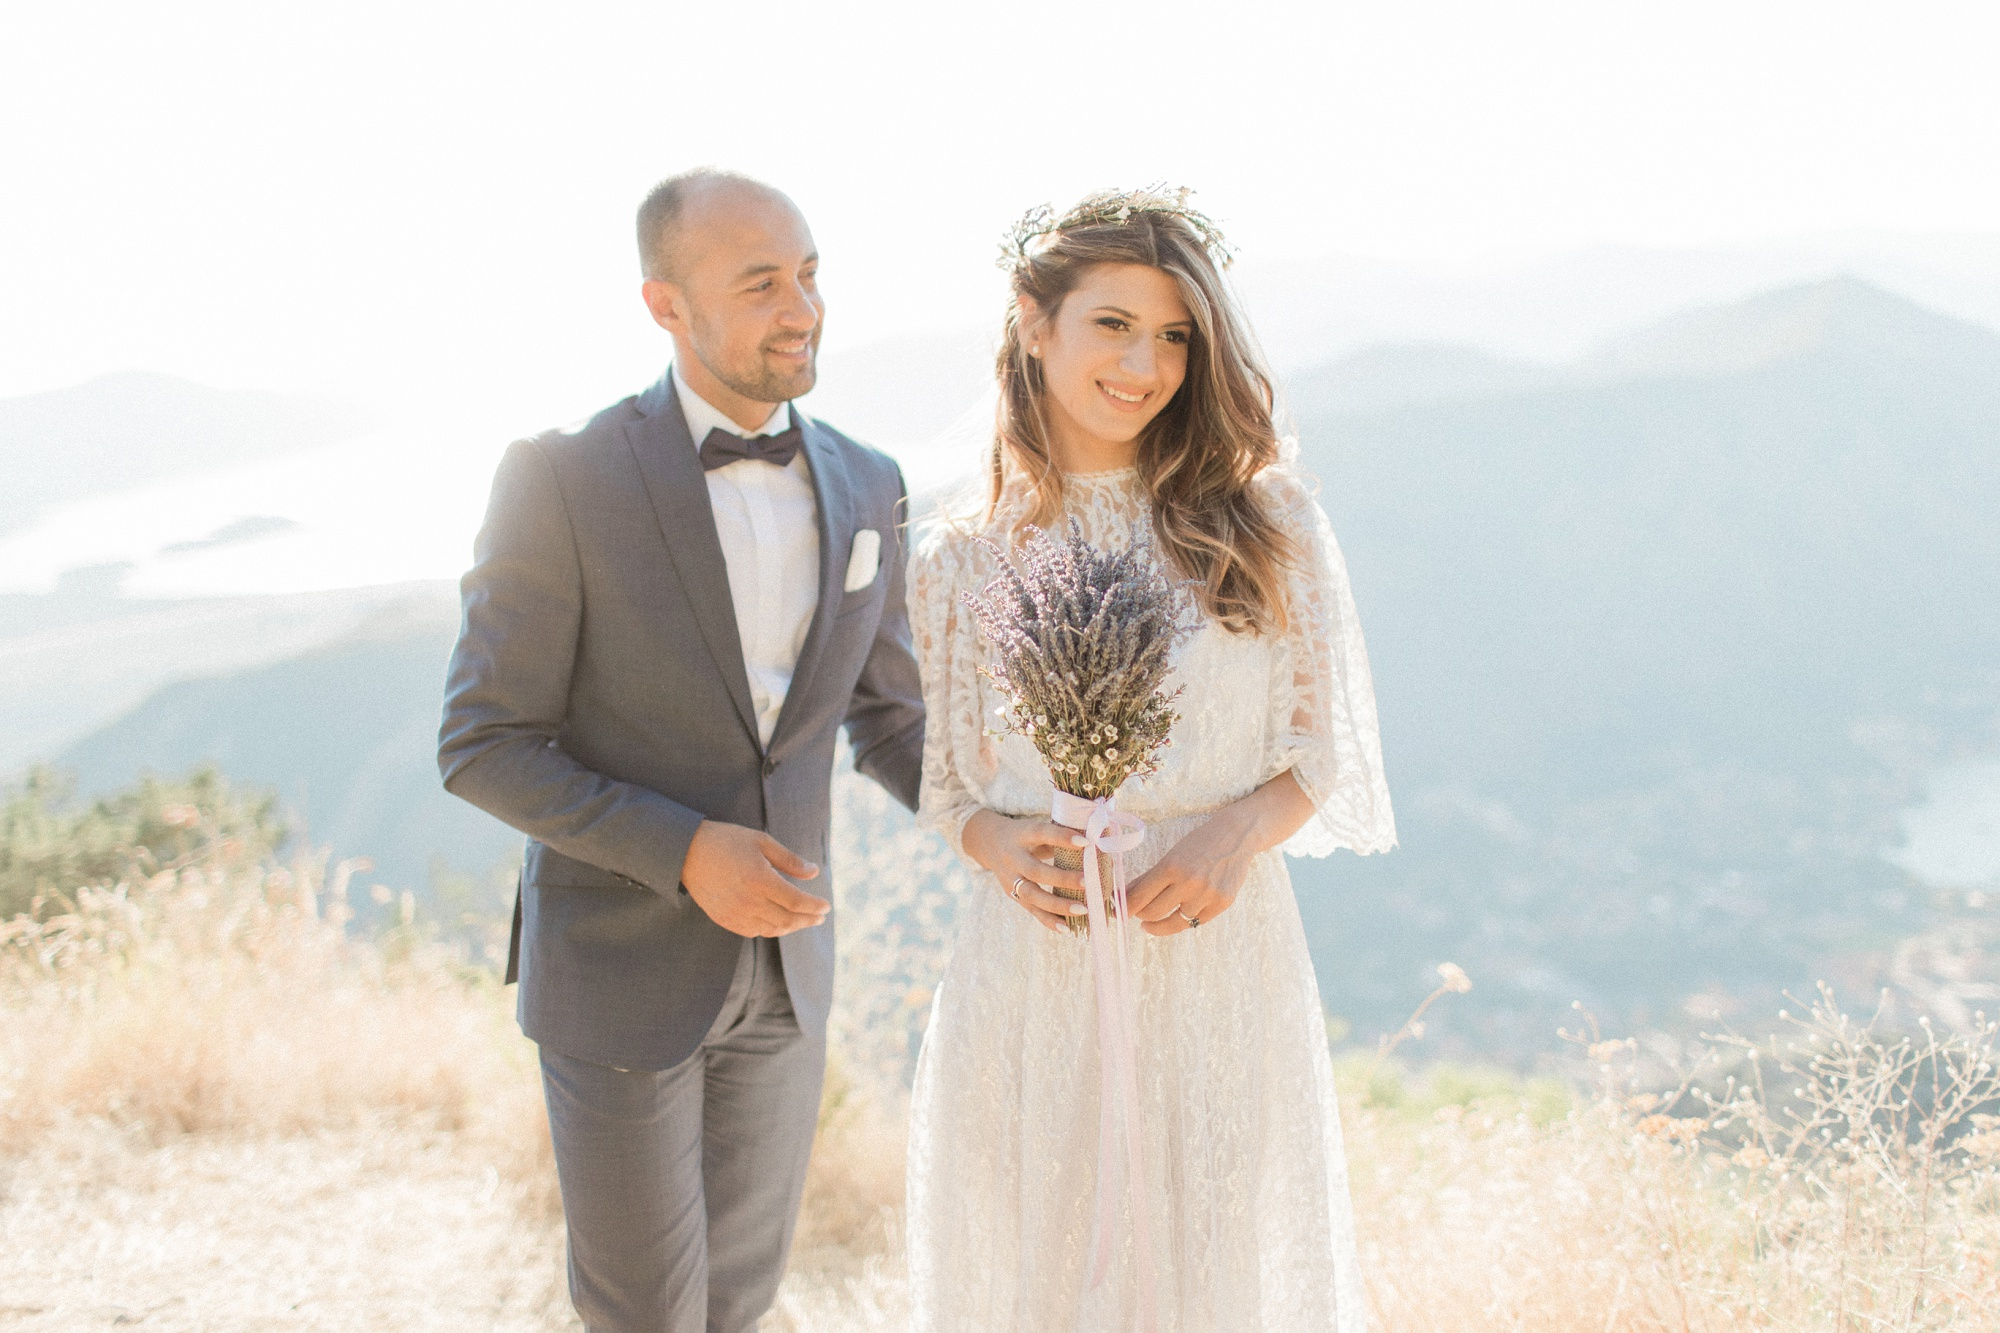 Albania Wedding Photographer - Anjeza Dyrmishi_0442.jpg